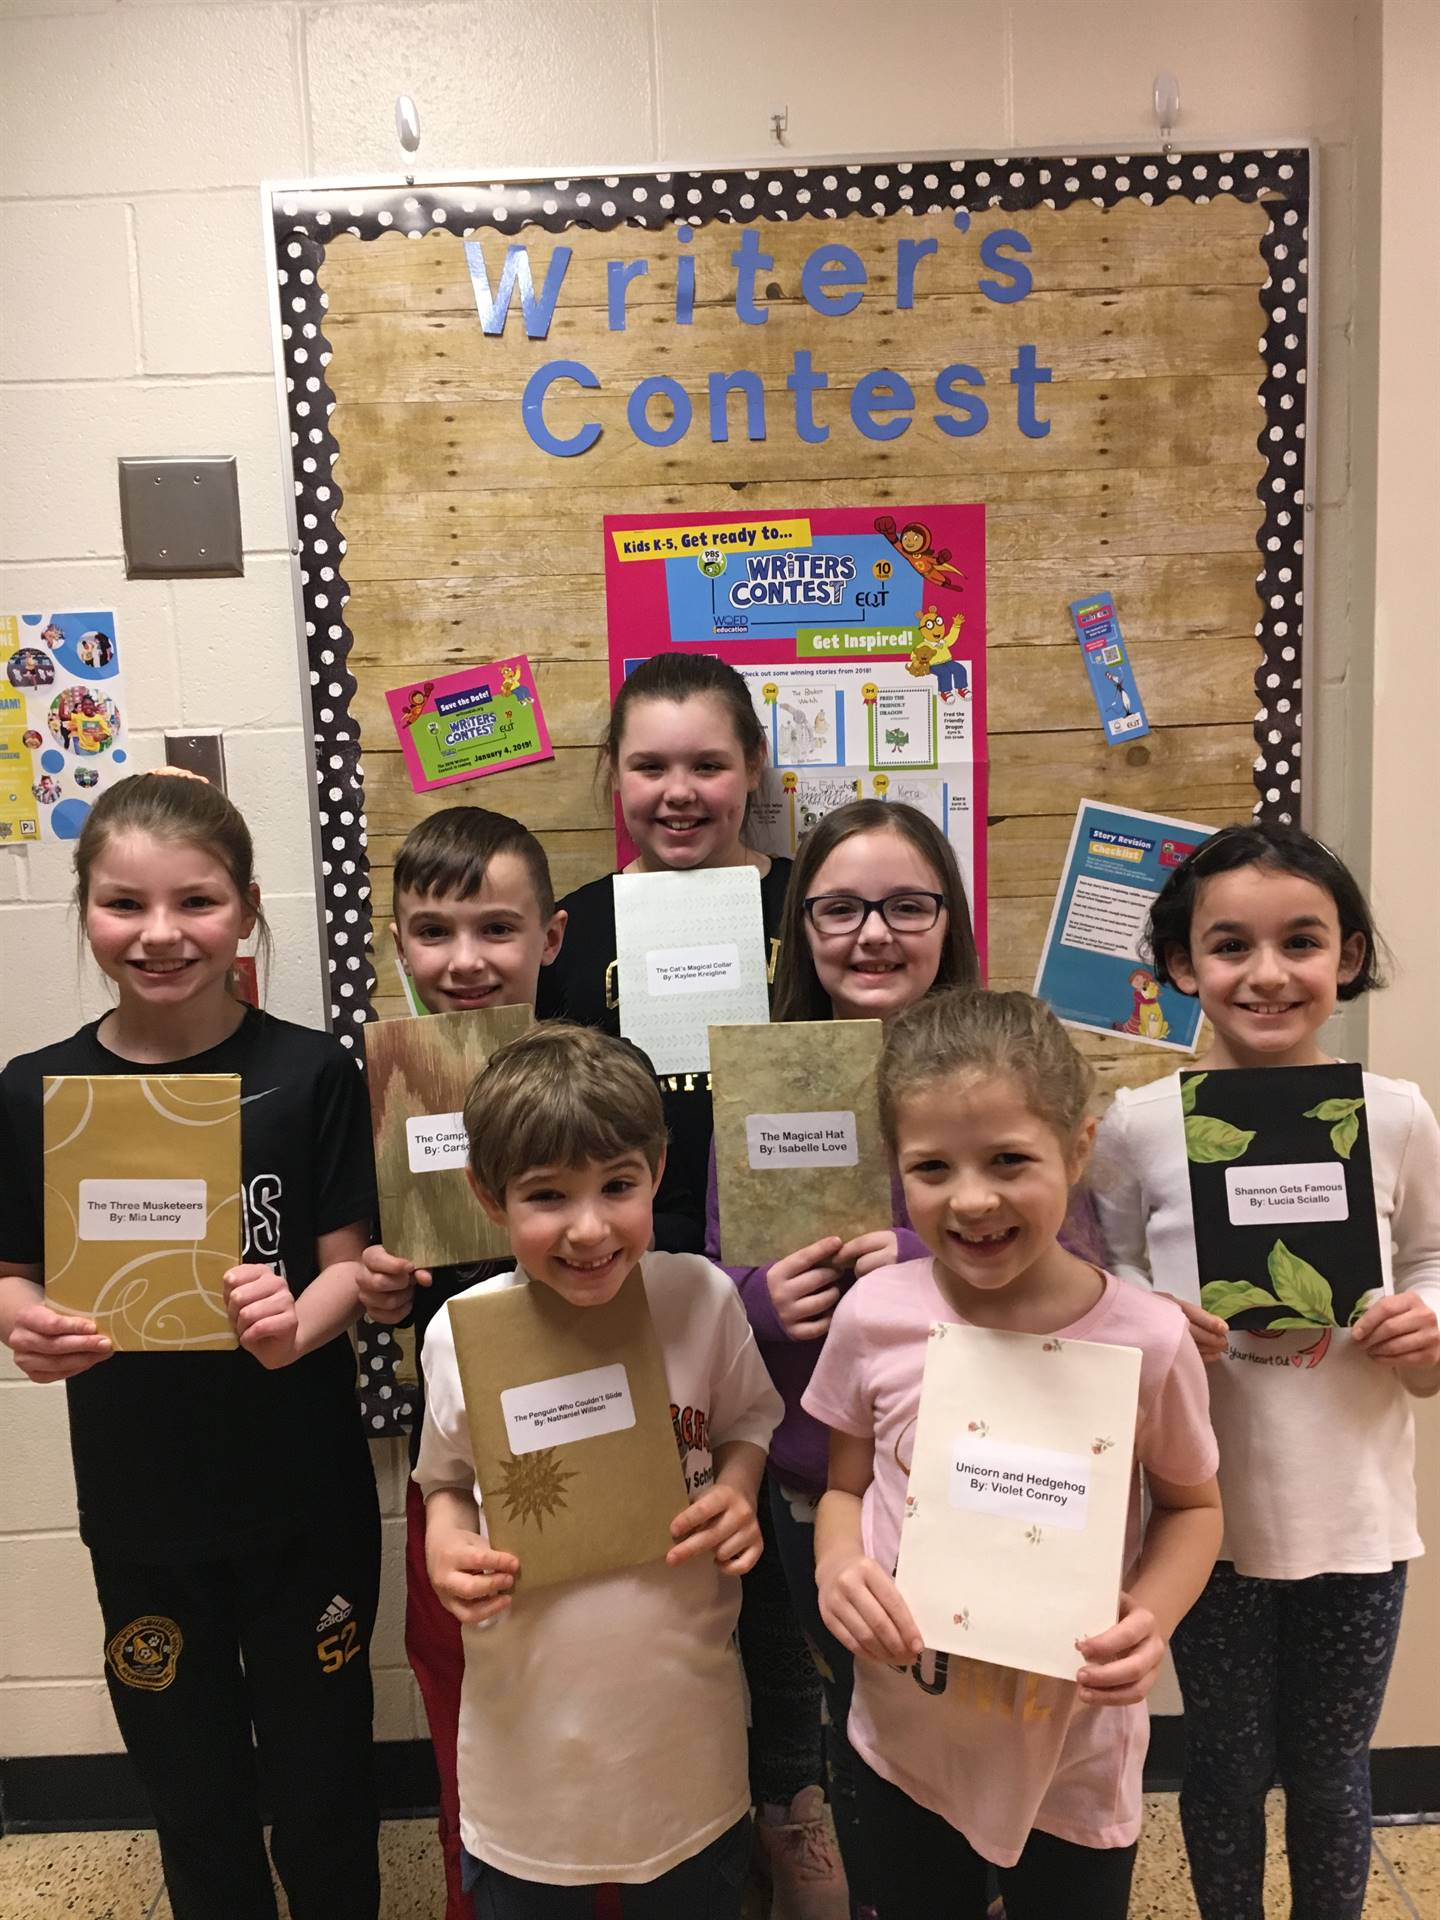 Seven students holding their original stories